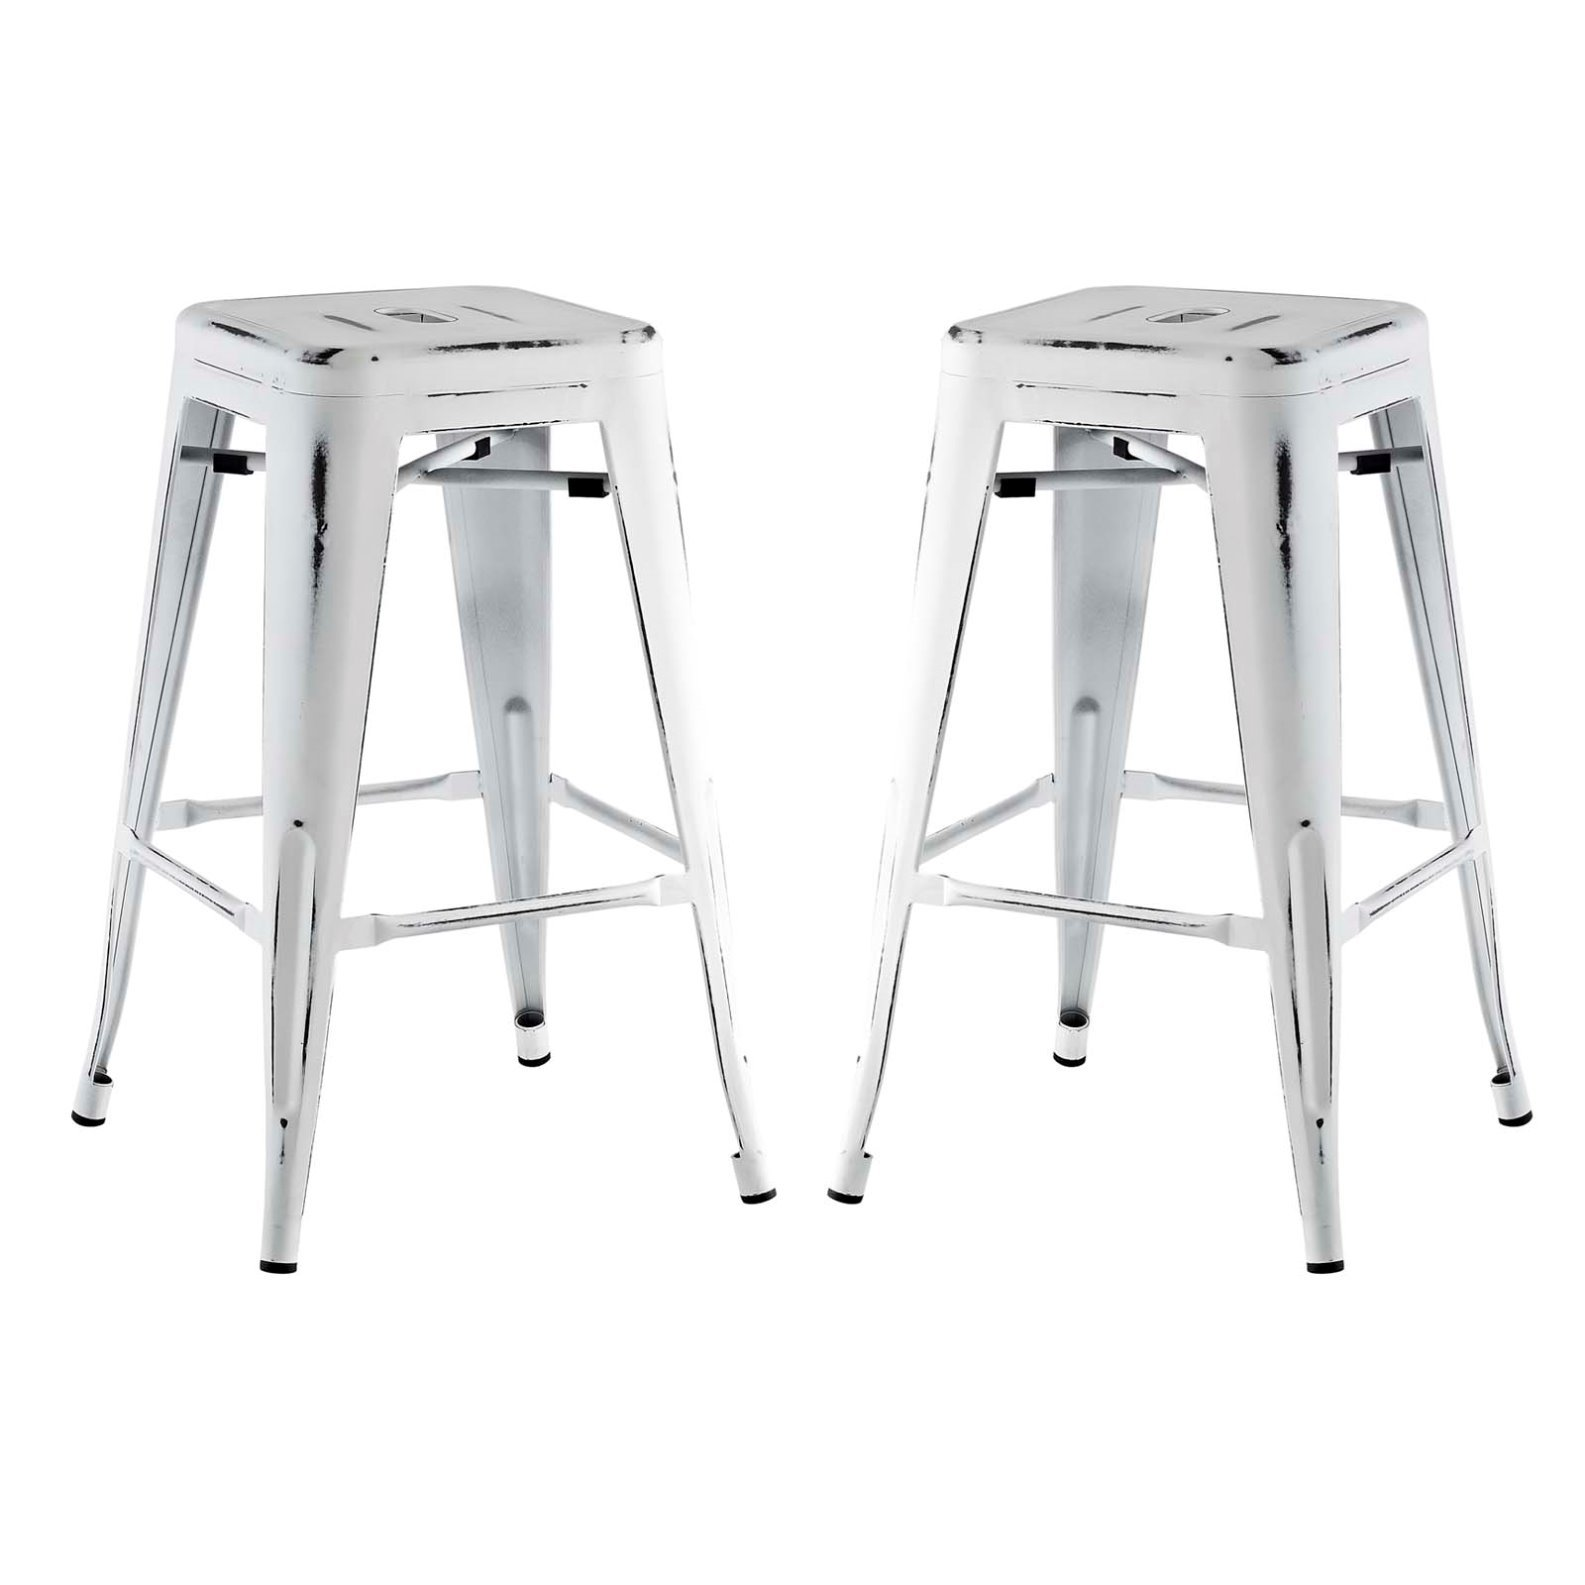 Modern Urban Industrial Distressed Antique Vintage Counter Stool Chair ( Set of 2), White, Metal